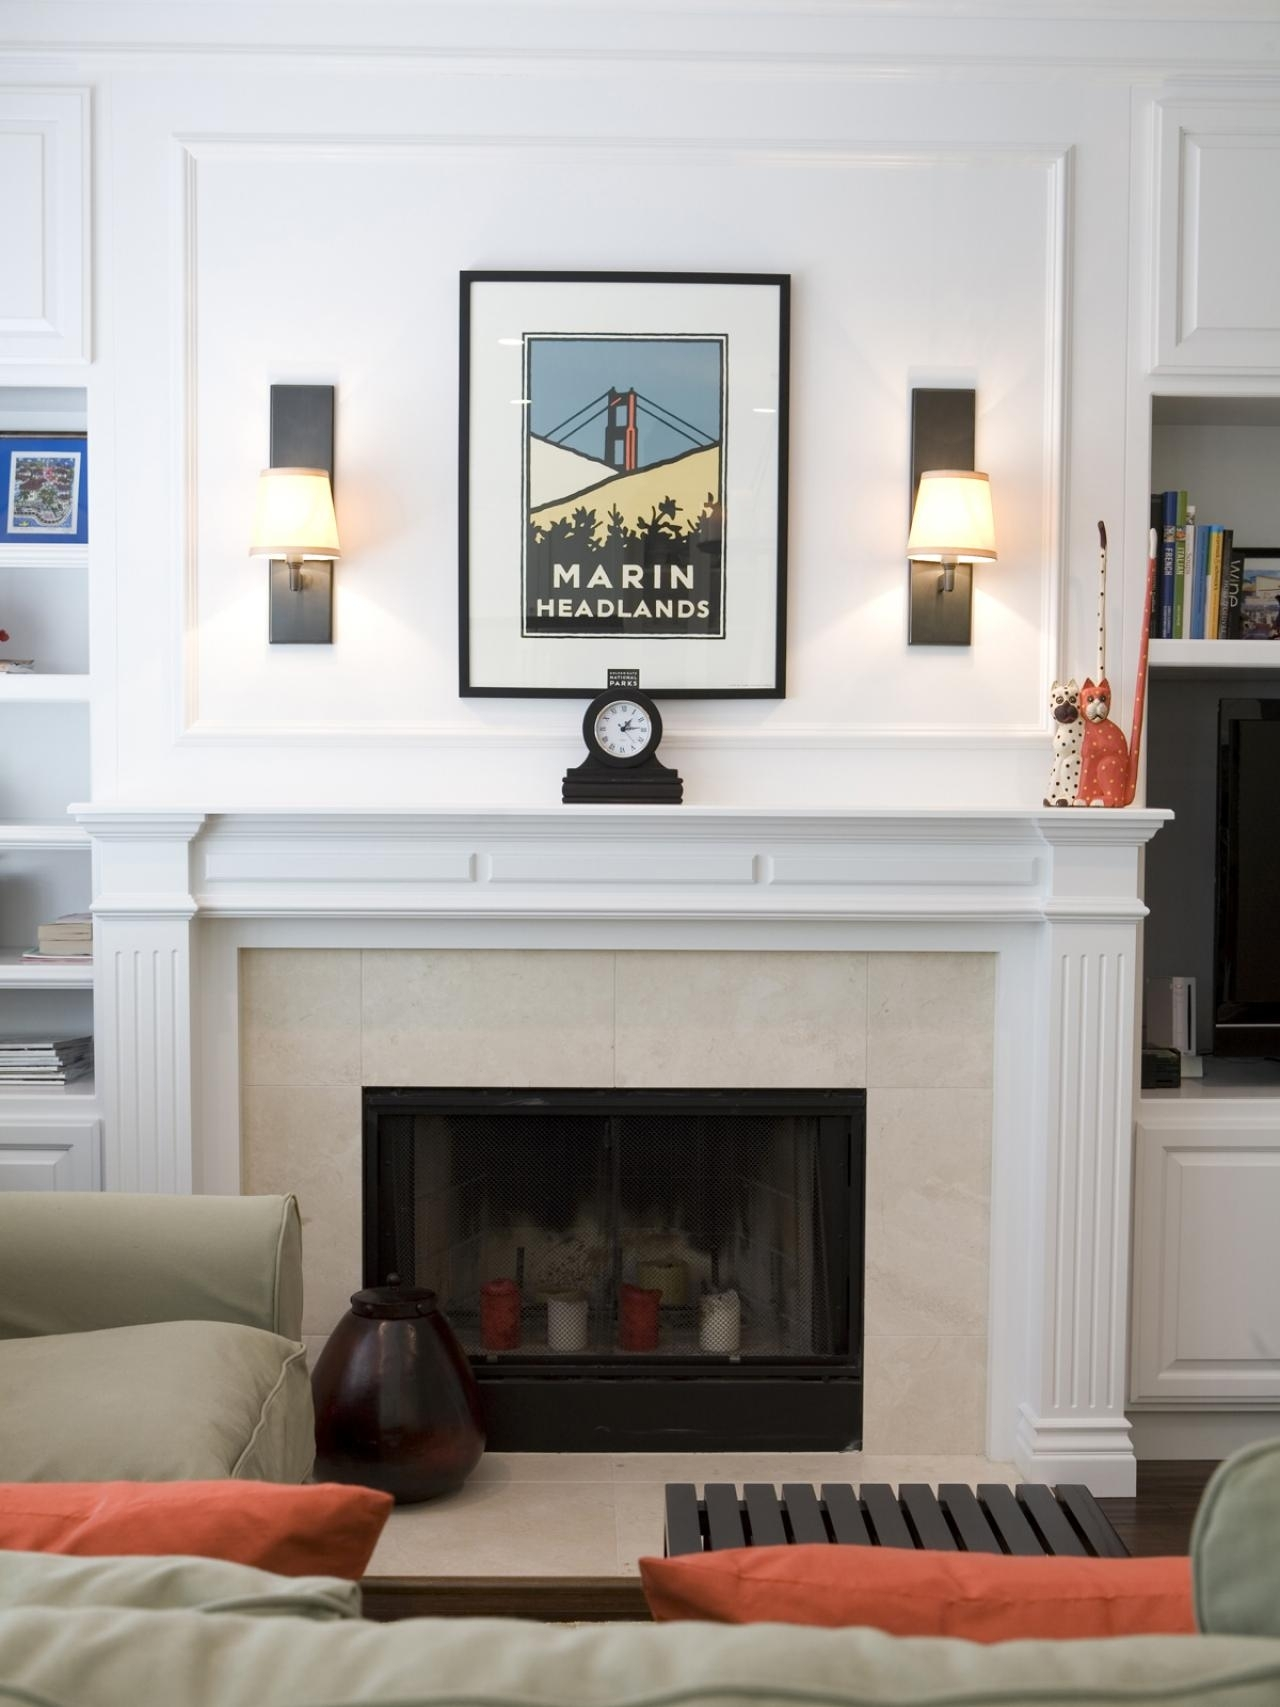 Decorating: Elegant Ikea Accent Chairs With Ikea Side Table And With Current Wall Accents Over Fireplace (View 5 of 15)